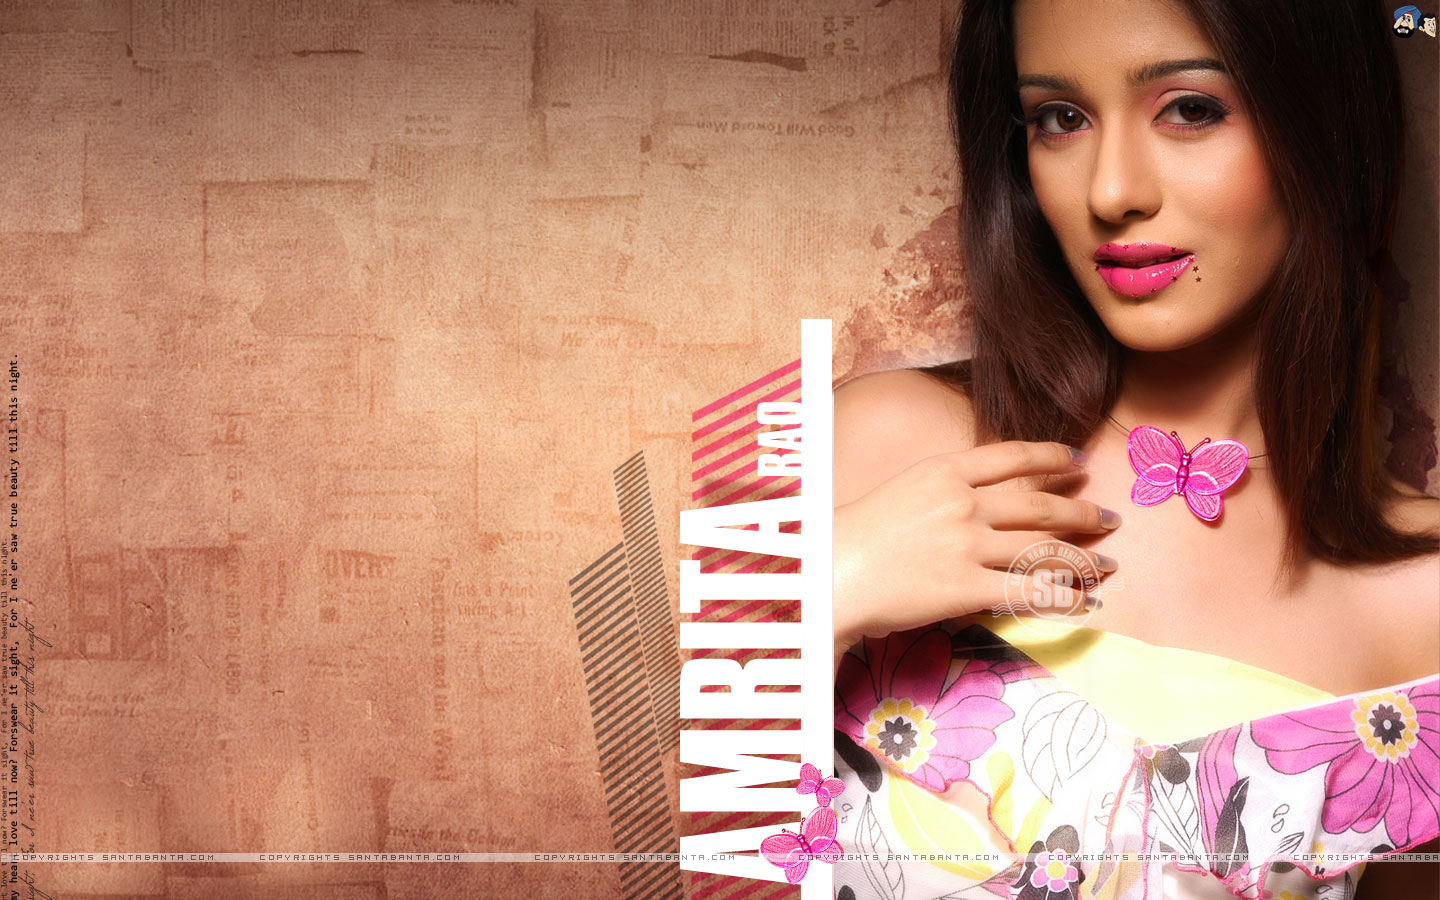 amrita rao 74a ... inking a deal with Playboy, this after 'nude' photos of ...